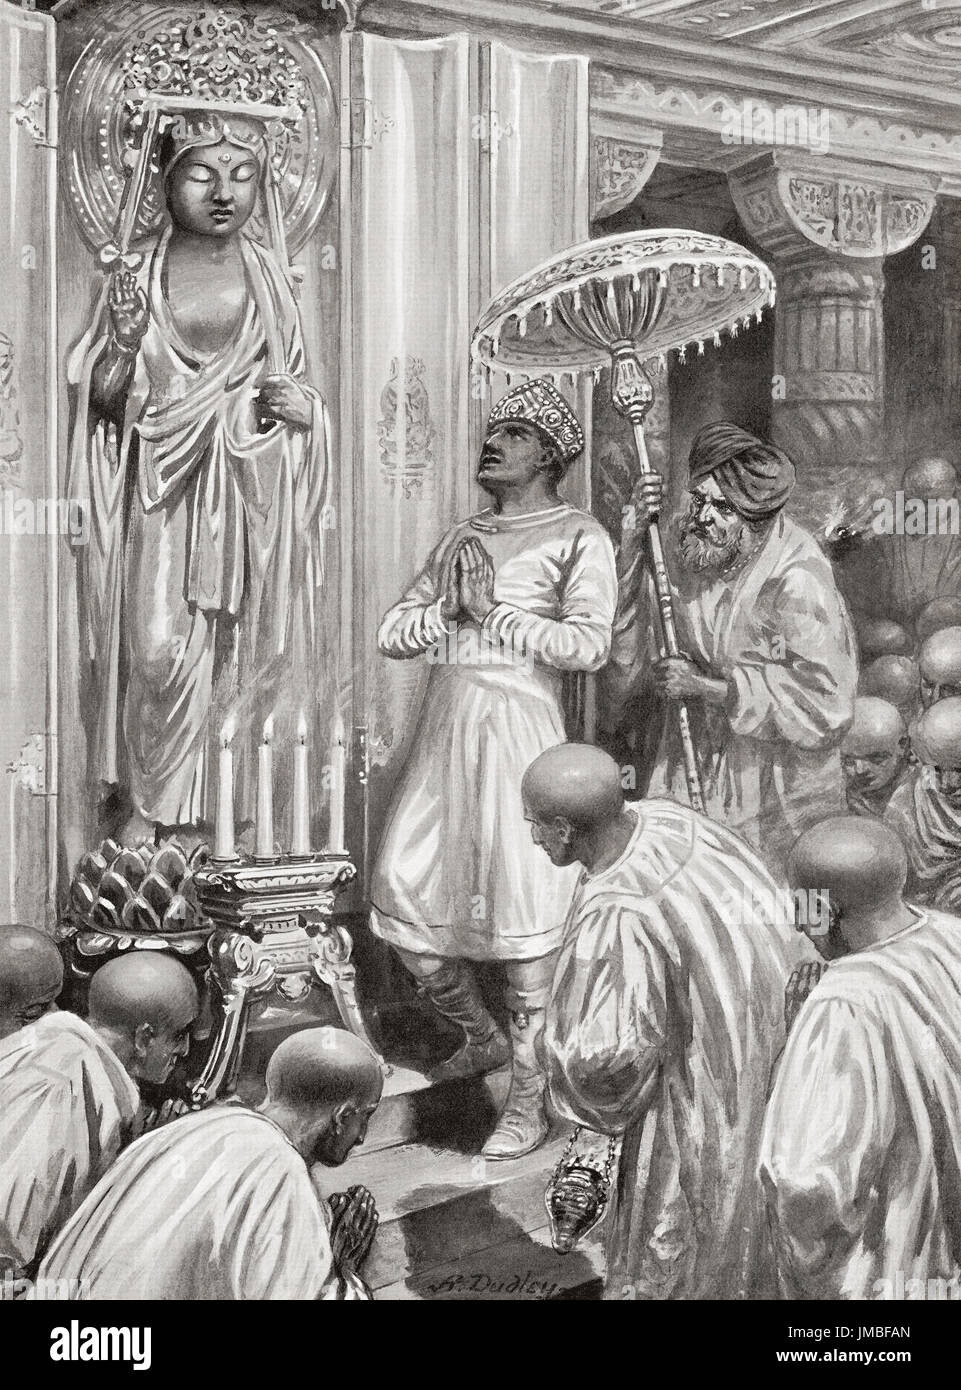 Kanishka inaugurates Mahayana Buddhism, 100 AD. Kanishka I aka Kanishka the Great. Second century emperor of the Kushan dynasty, famous for his military, political, and spiritual achievements. After the painting by Ambrose Dudley (1867-1951).  From Hutchinson's History of the Nations, published 1915. - Stock Image